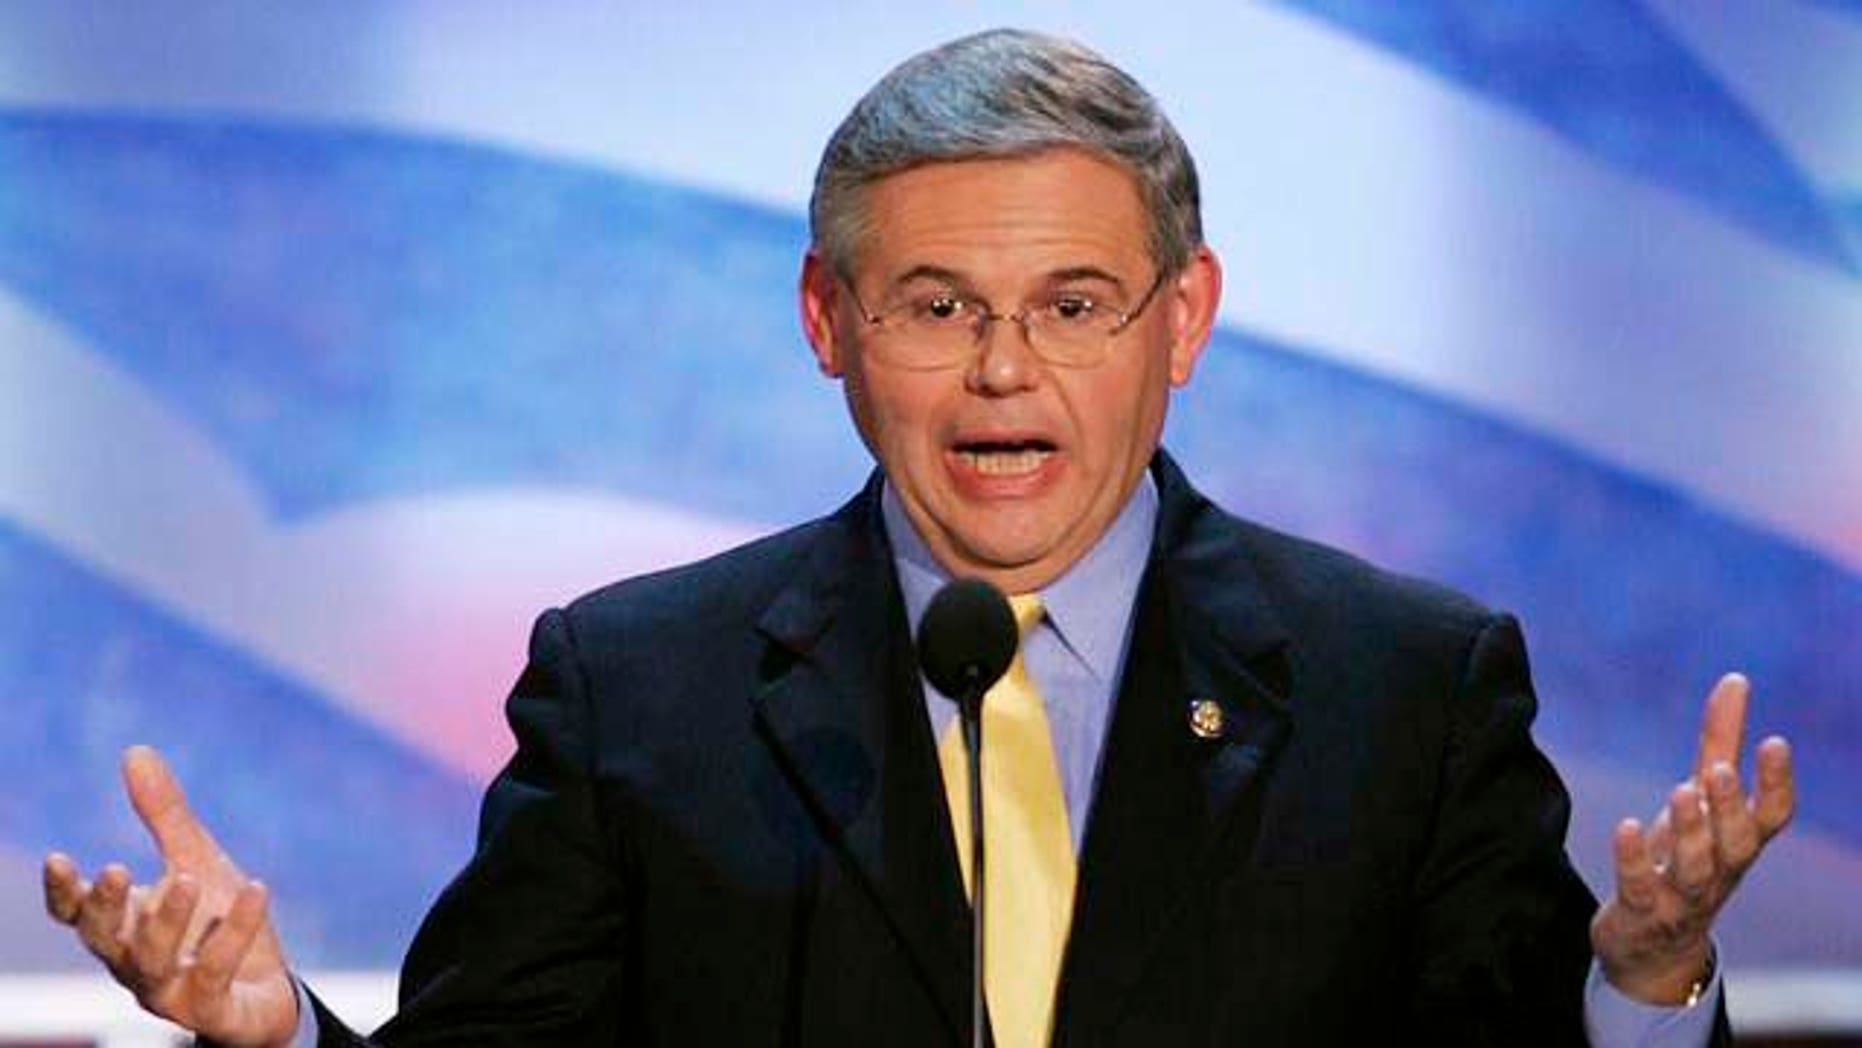 Rep. Robert Menendez, D-N.J., speaks to delegates at the Democratic National Convention on Monday, July 26, 2004, in Boston. (AP Photo/Ron Edmonds)